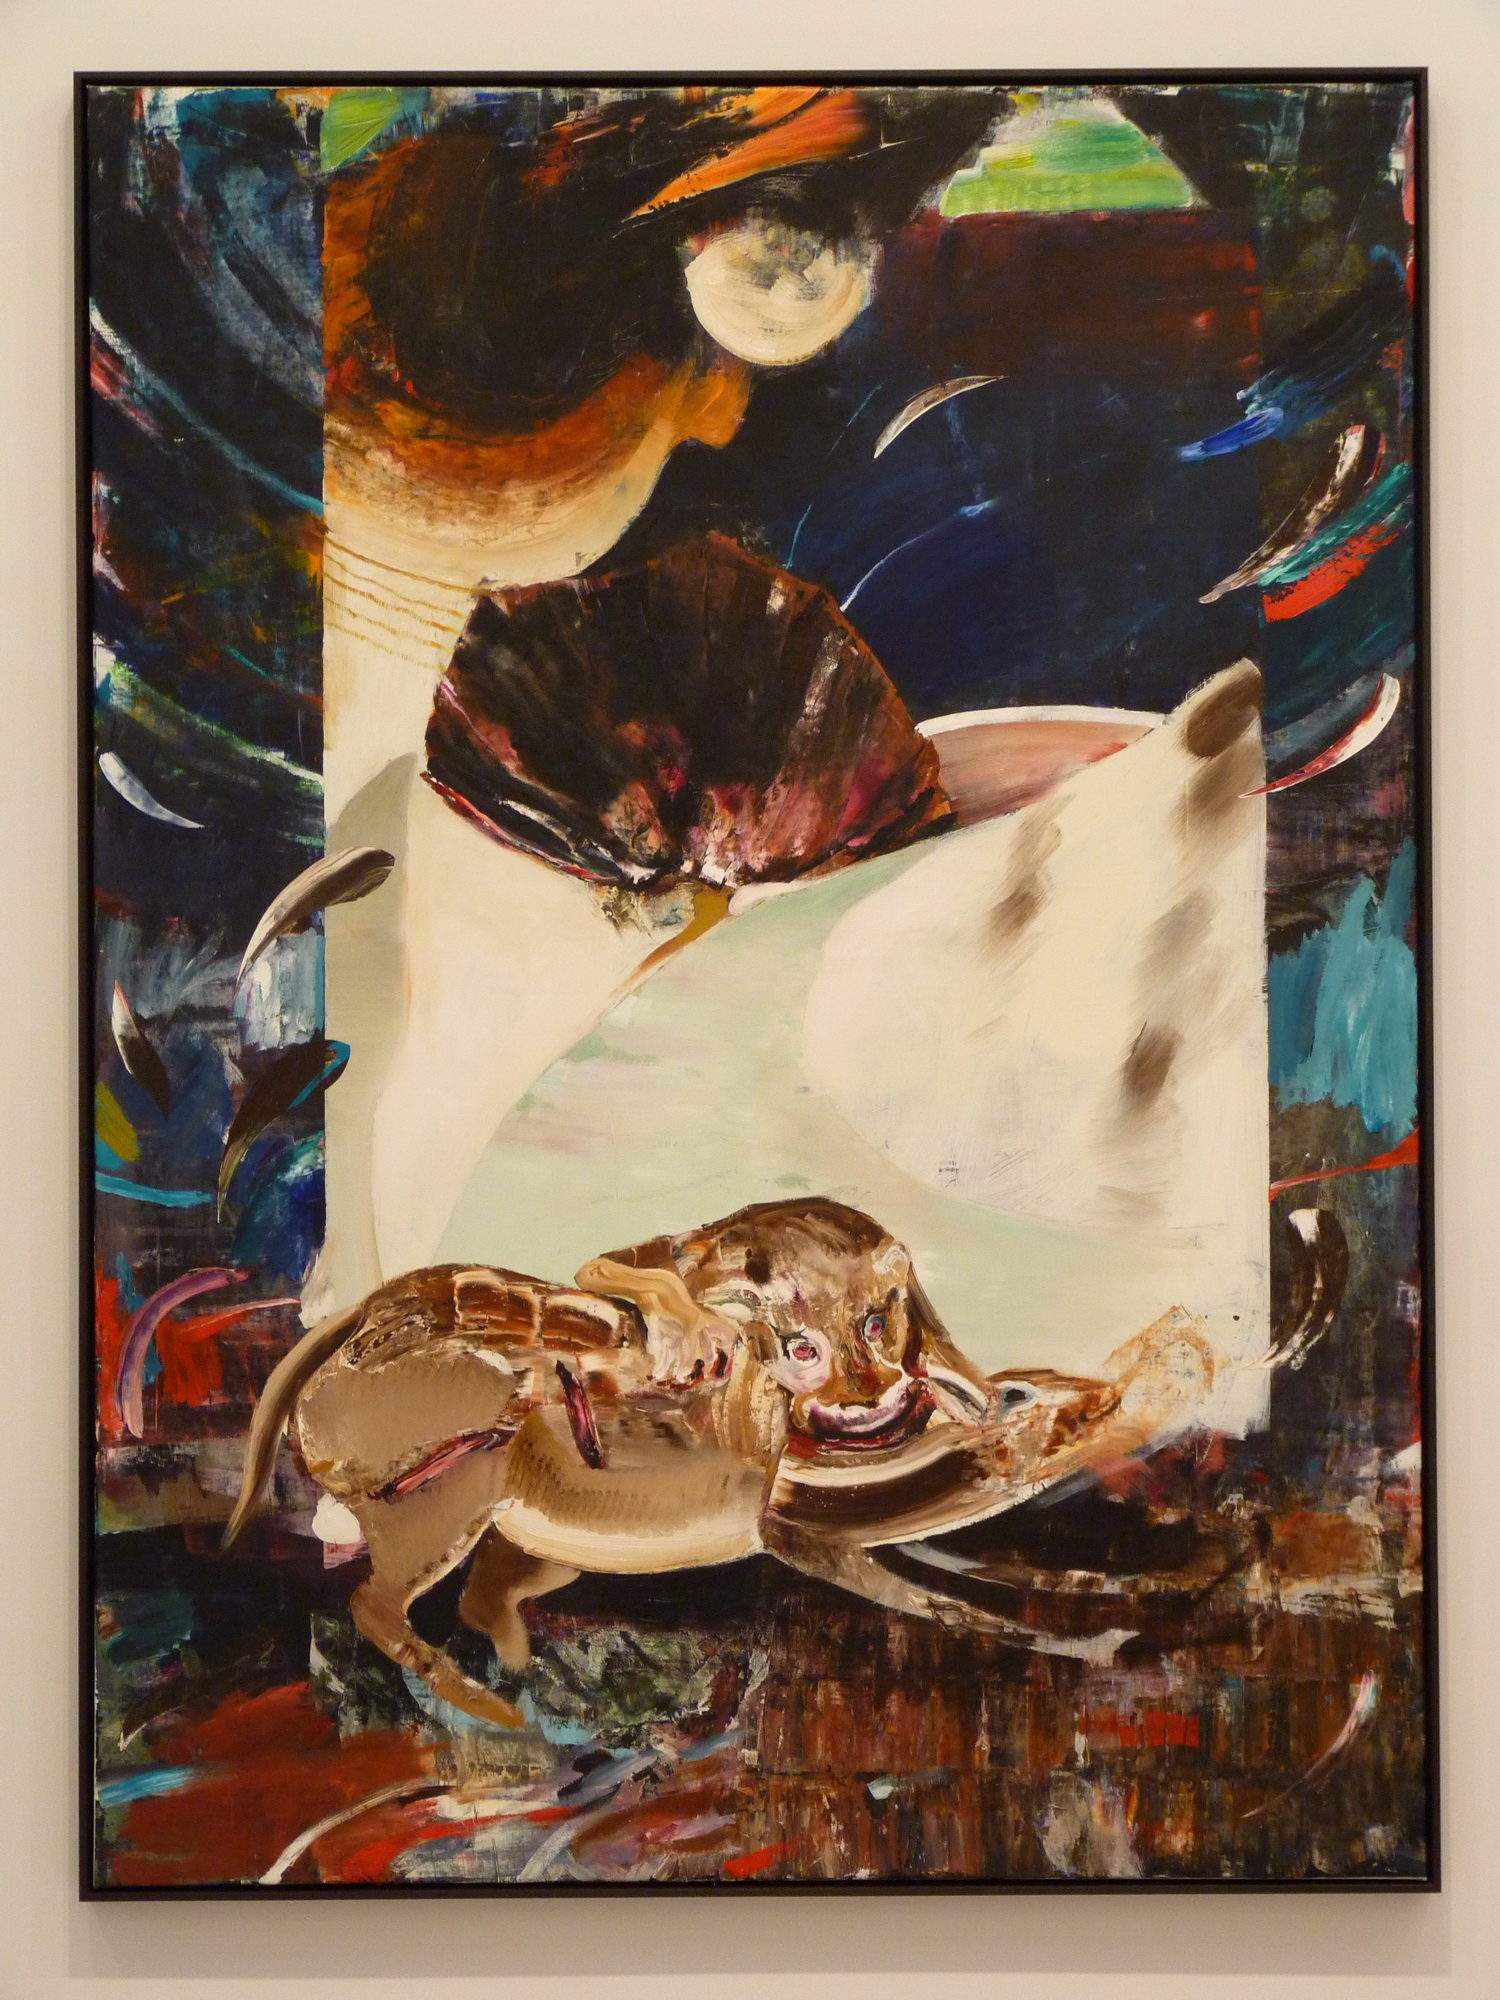 019 Adrian Ghenie ne1977  the hungry lion 230x170cm  the hungry lion 230x170cm 2015